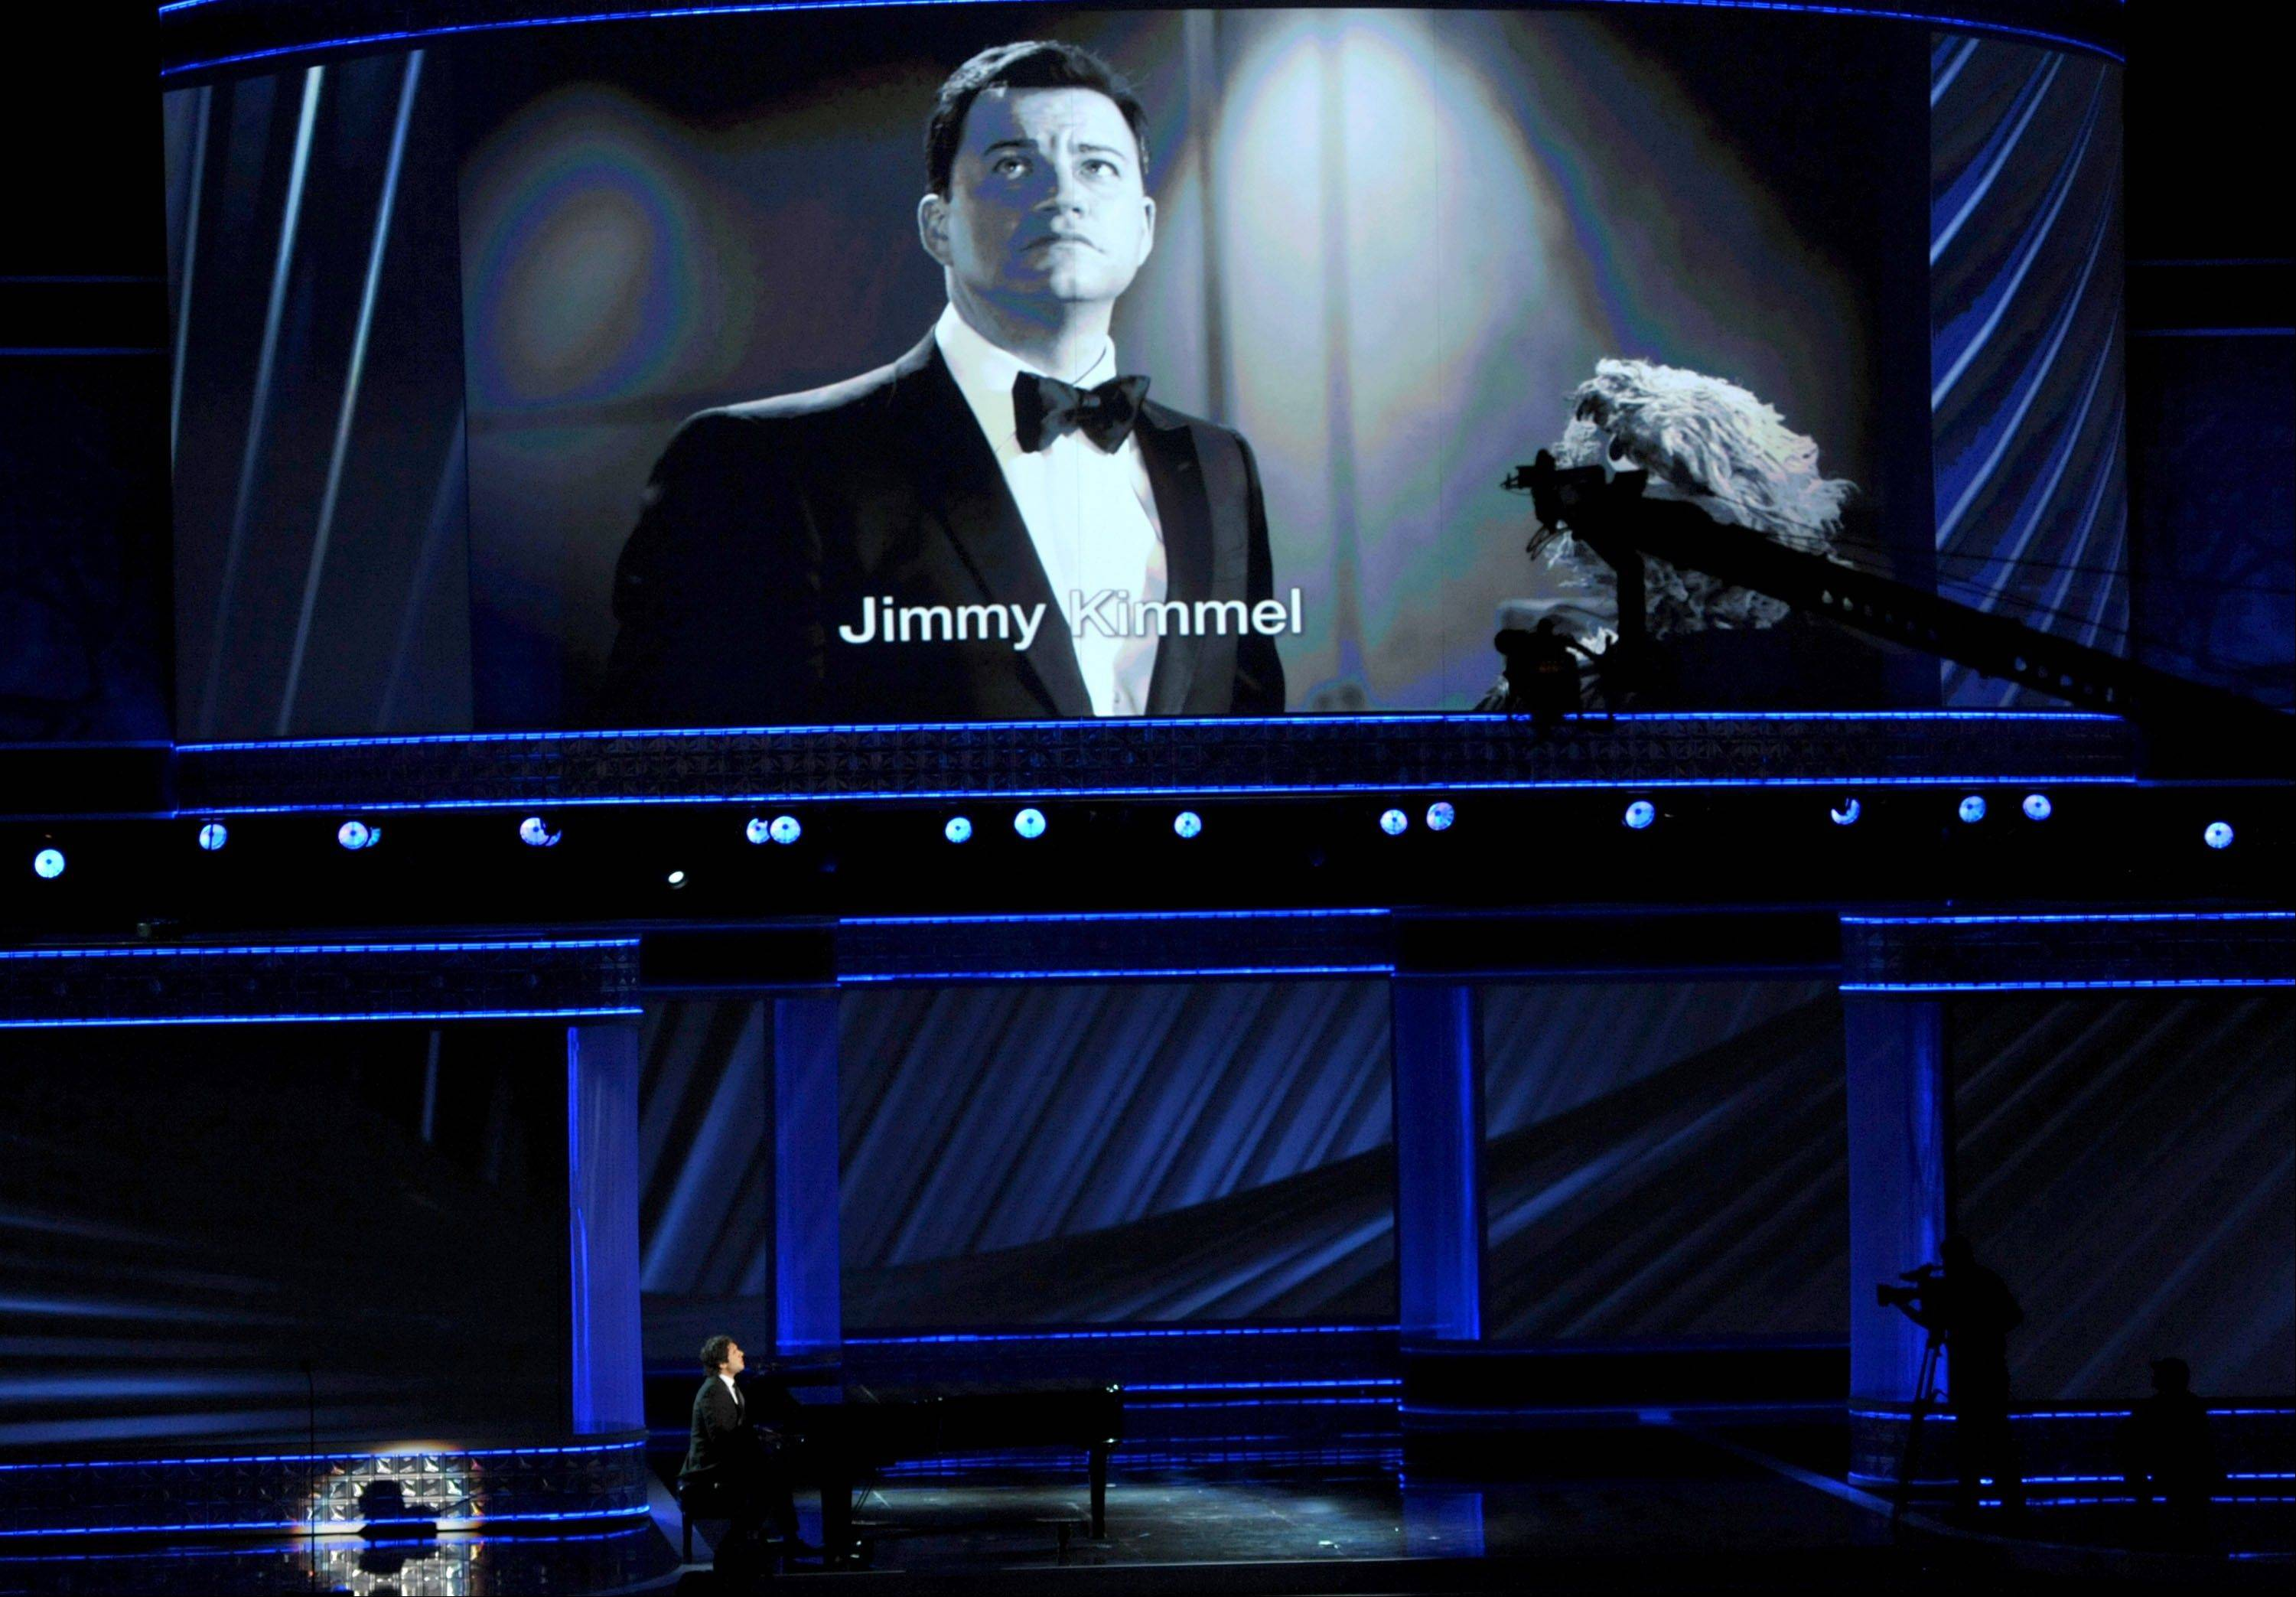 Josh Groban, left, and Jimmy Kimmel, onscreen, perform at the 64th Primetime Emmy Awards.